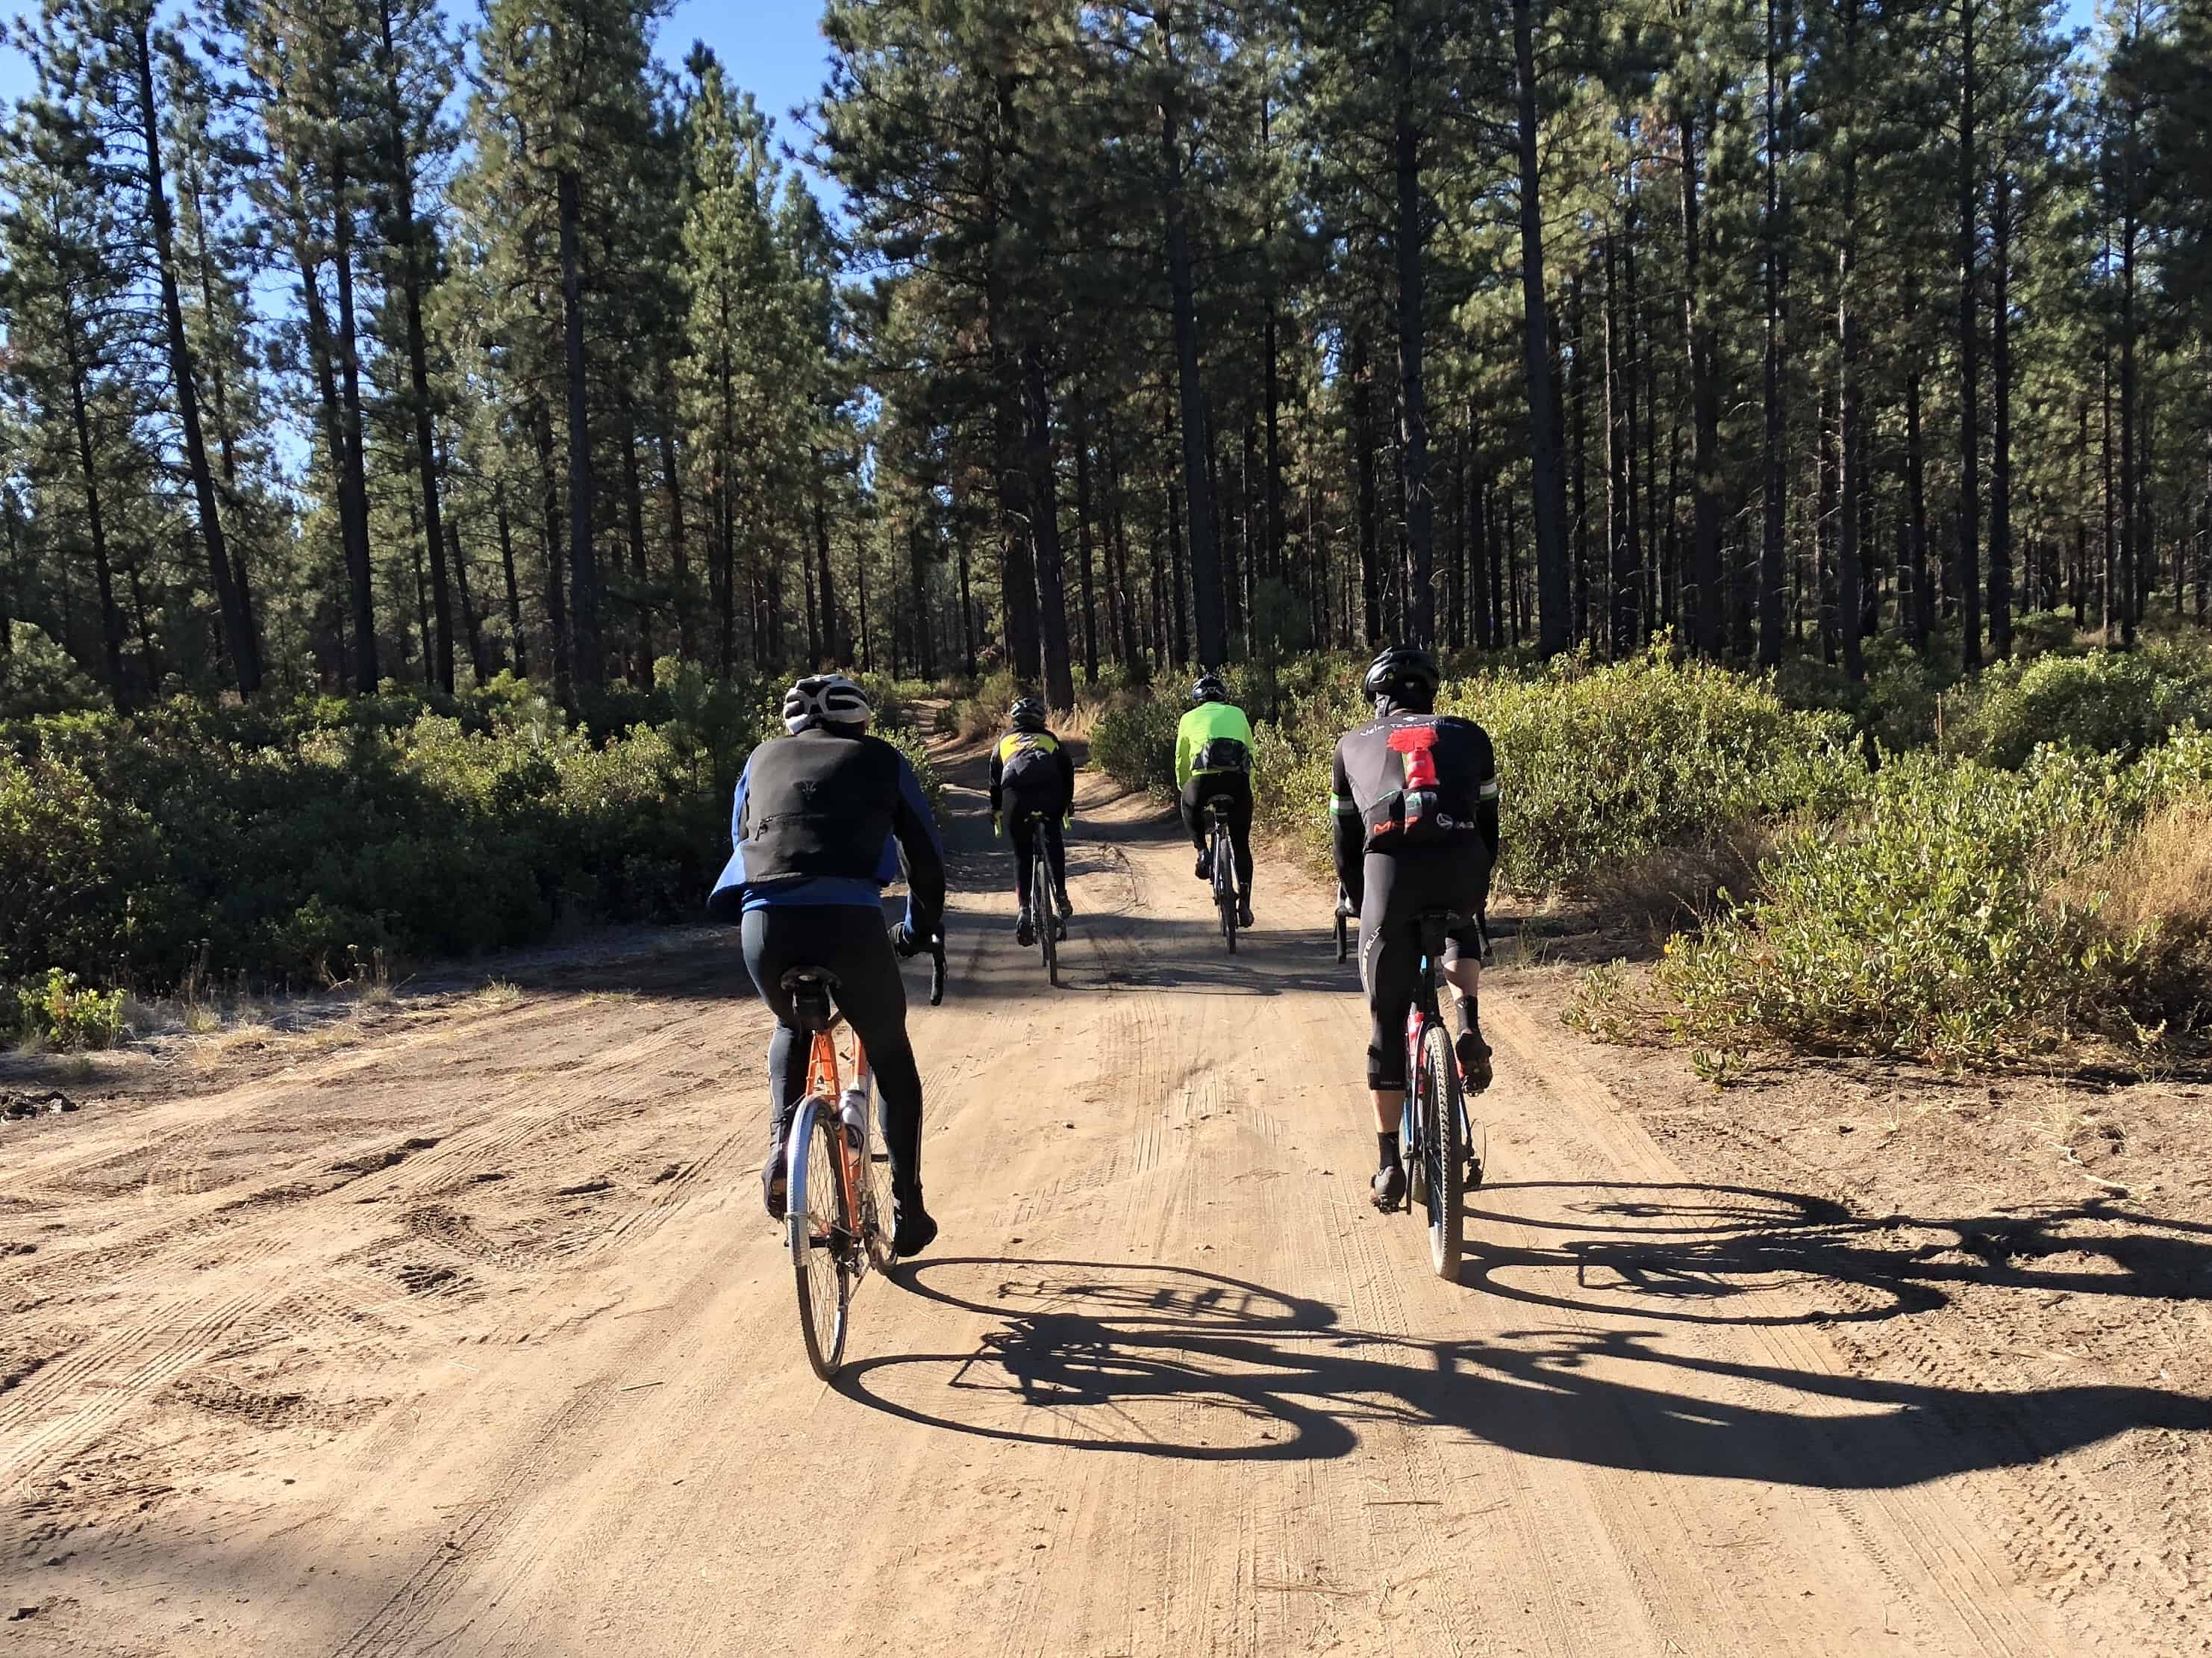 Cyclysts on Phil's Trail, Bend, Oregon